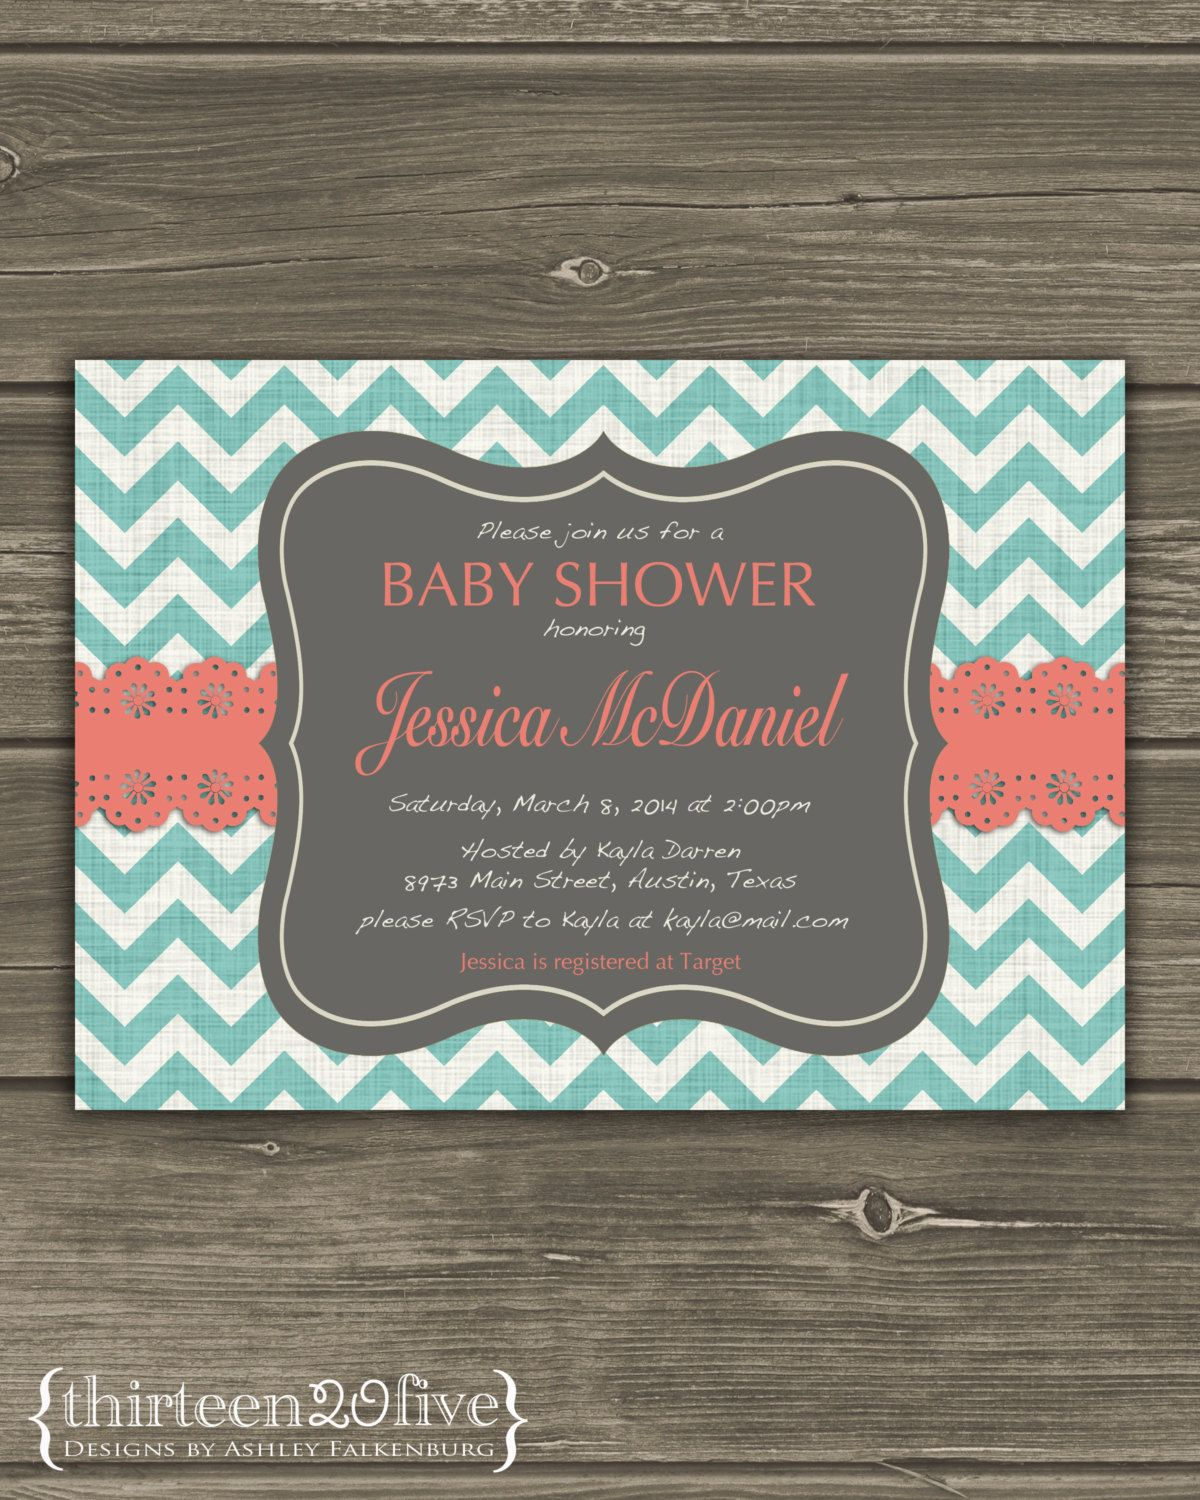 simple diy bridal shower invitations%0A Teal Chevron Baby Shower Invitation Coral Lace Custom DIY